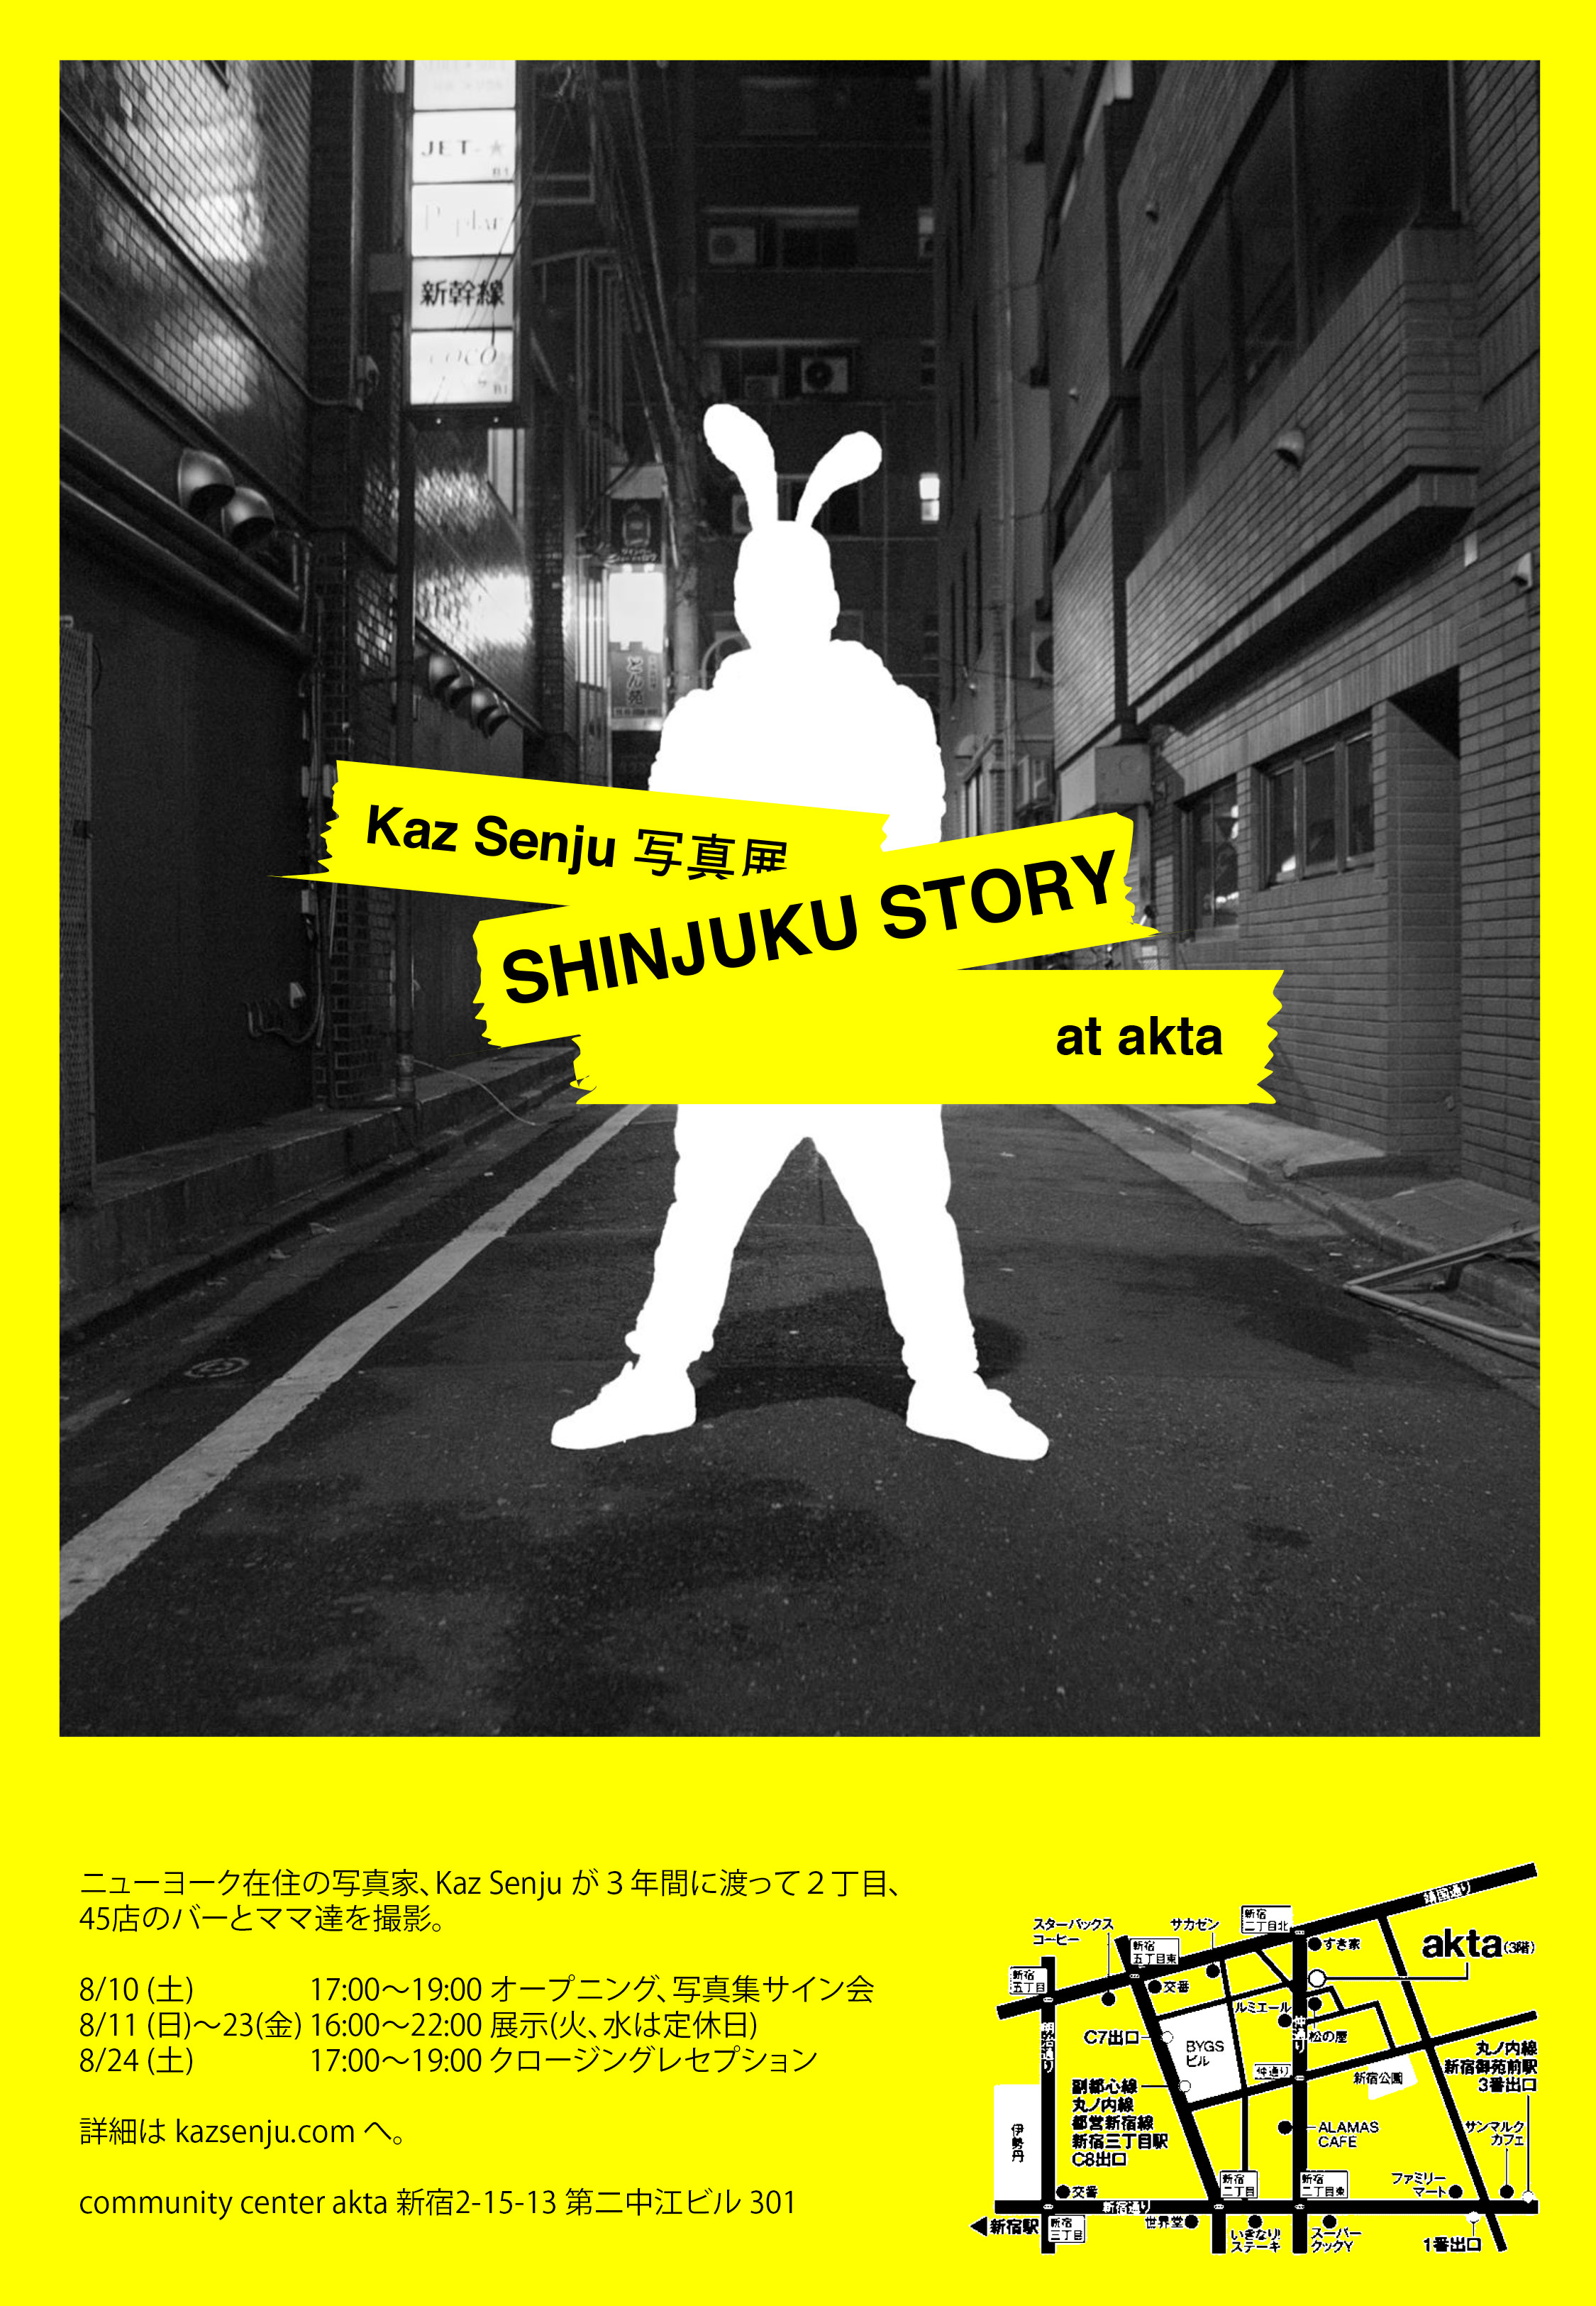 shinjukustory-yellow.jpg